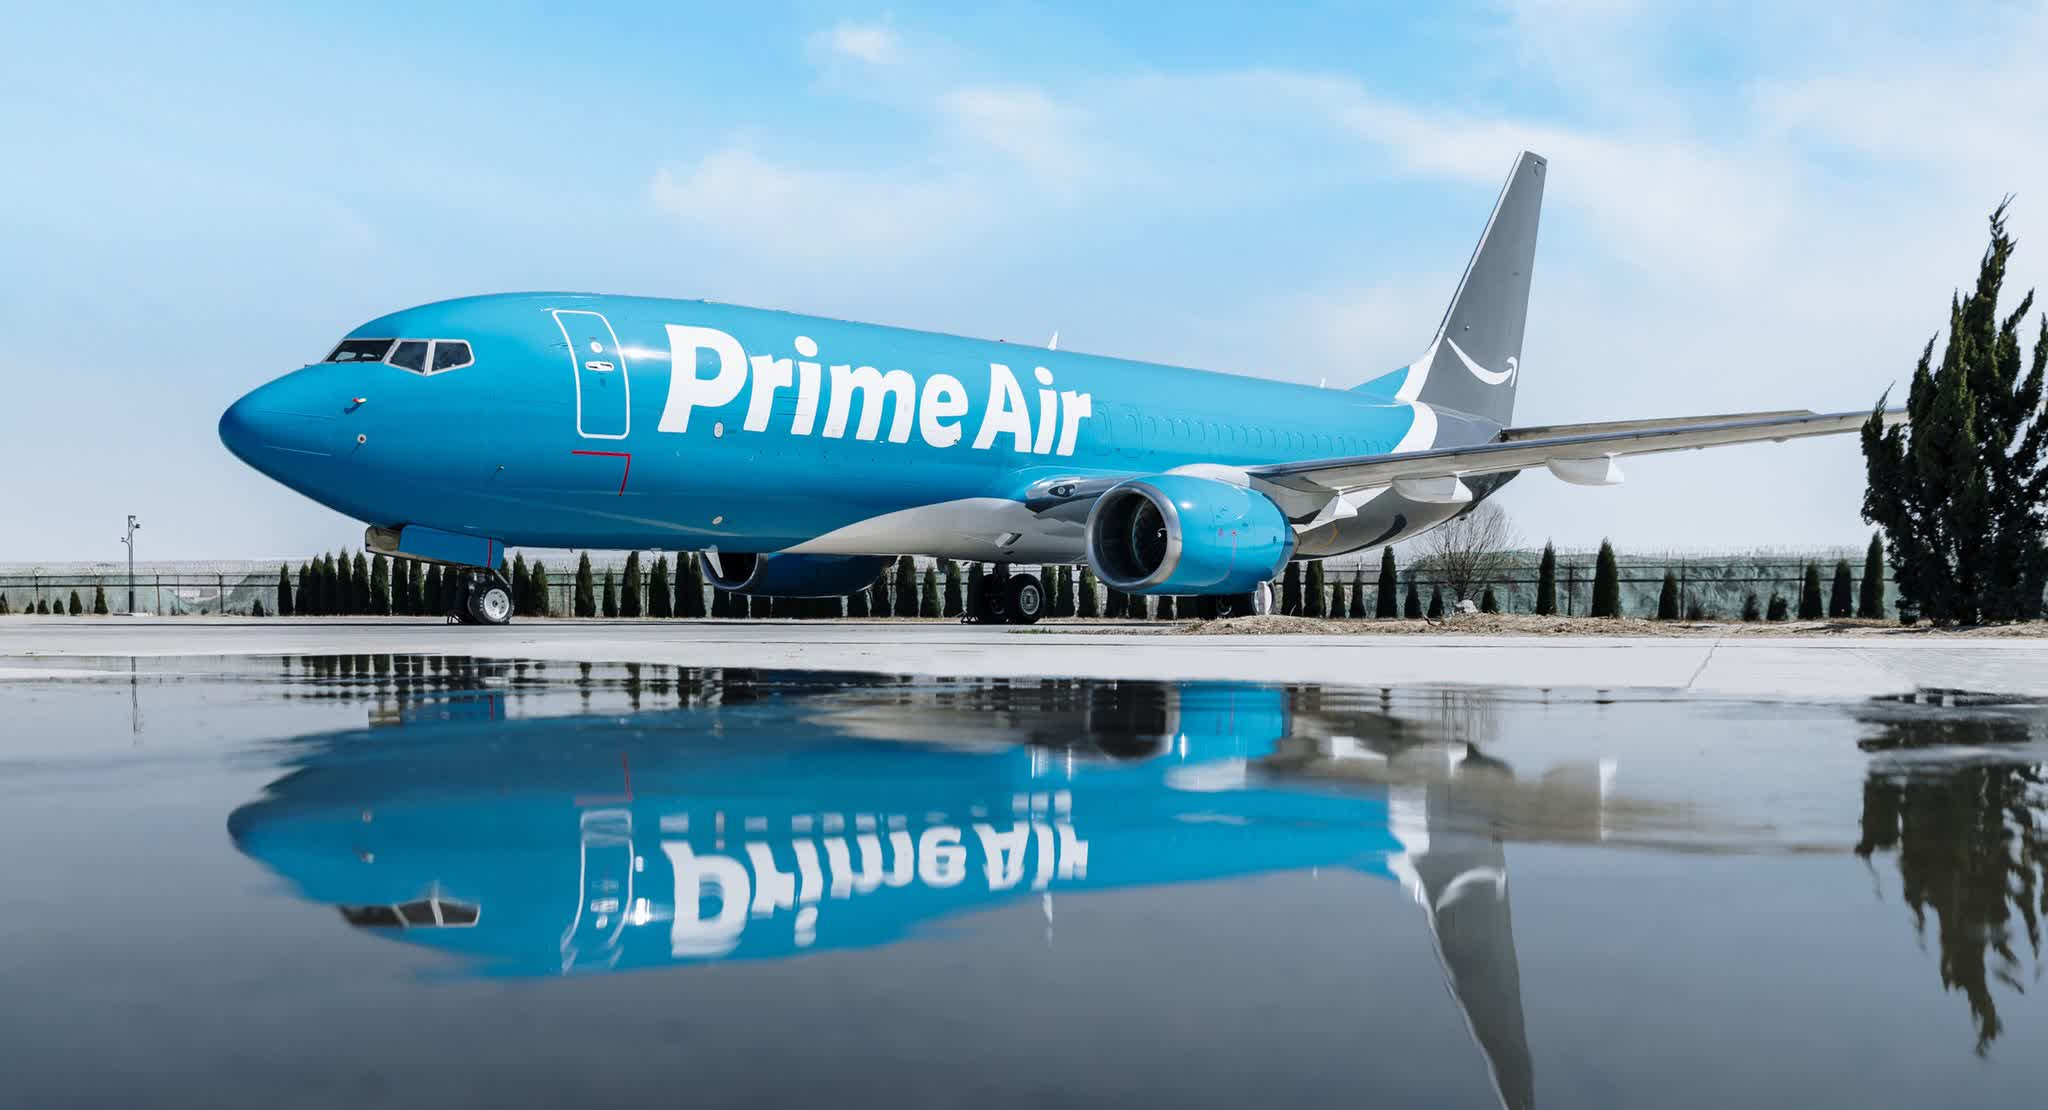 Amazon buys 11 Boeing 767-300 jets to expand air transportation network